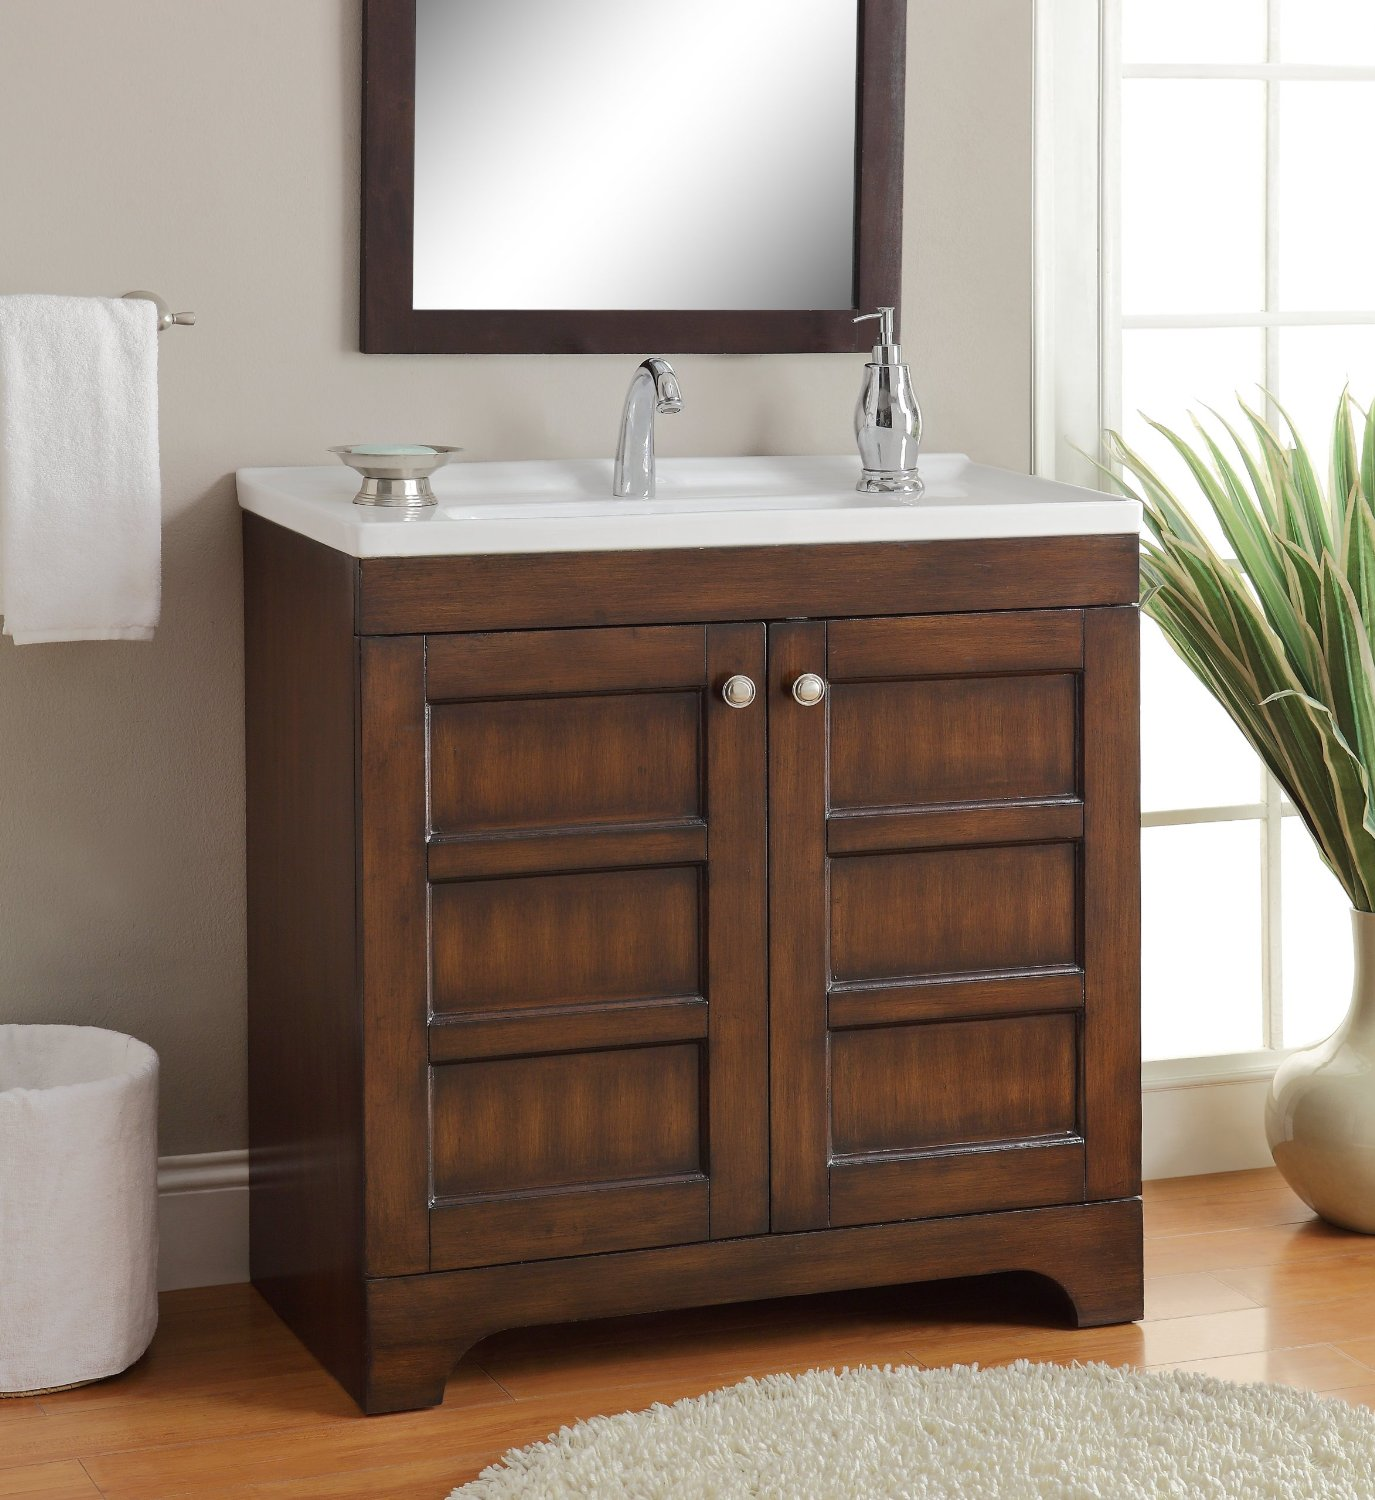 adelina 32 inch contemporary bathroom vanity, vitreous china top and 32 Inch Bathroom Vanity